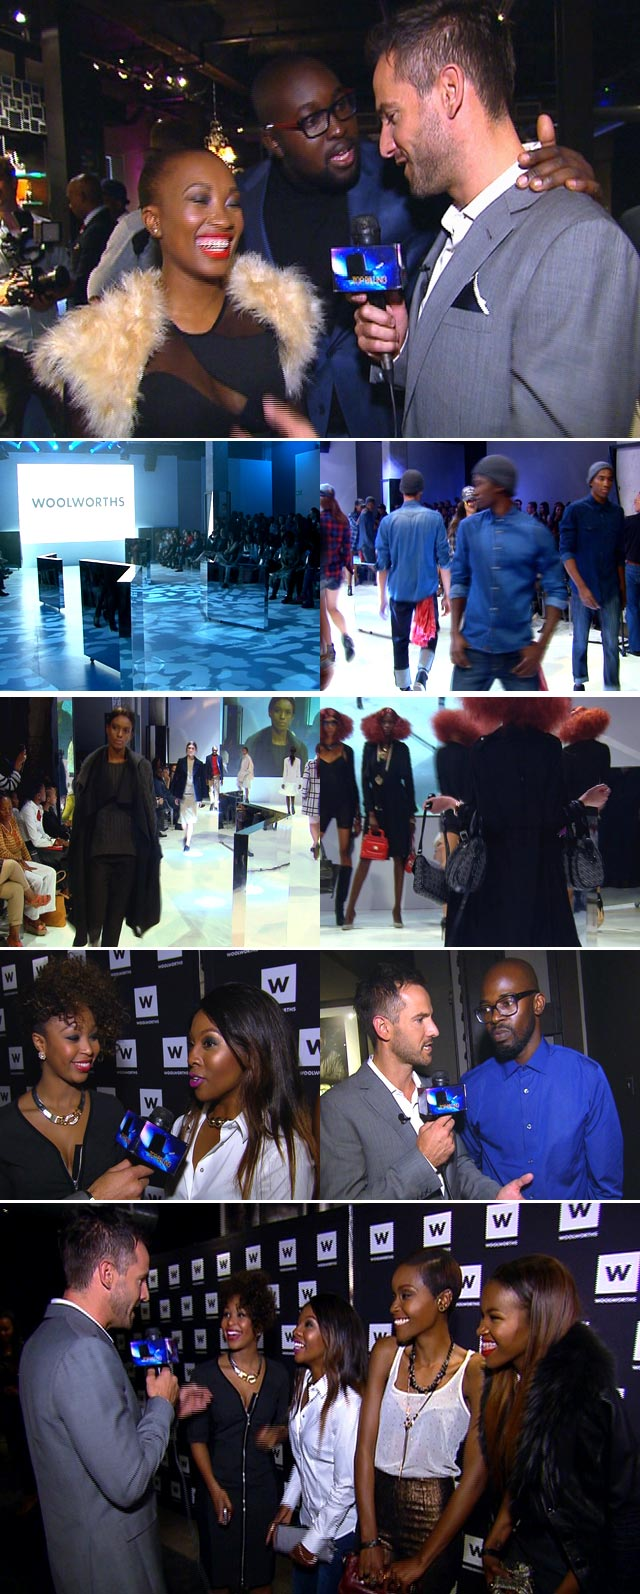 Woolworths winter fashion launch